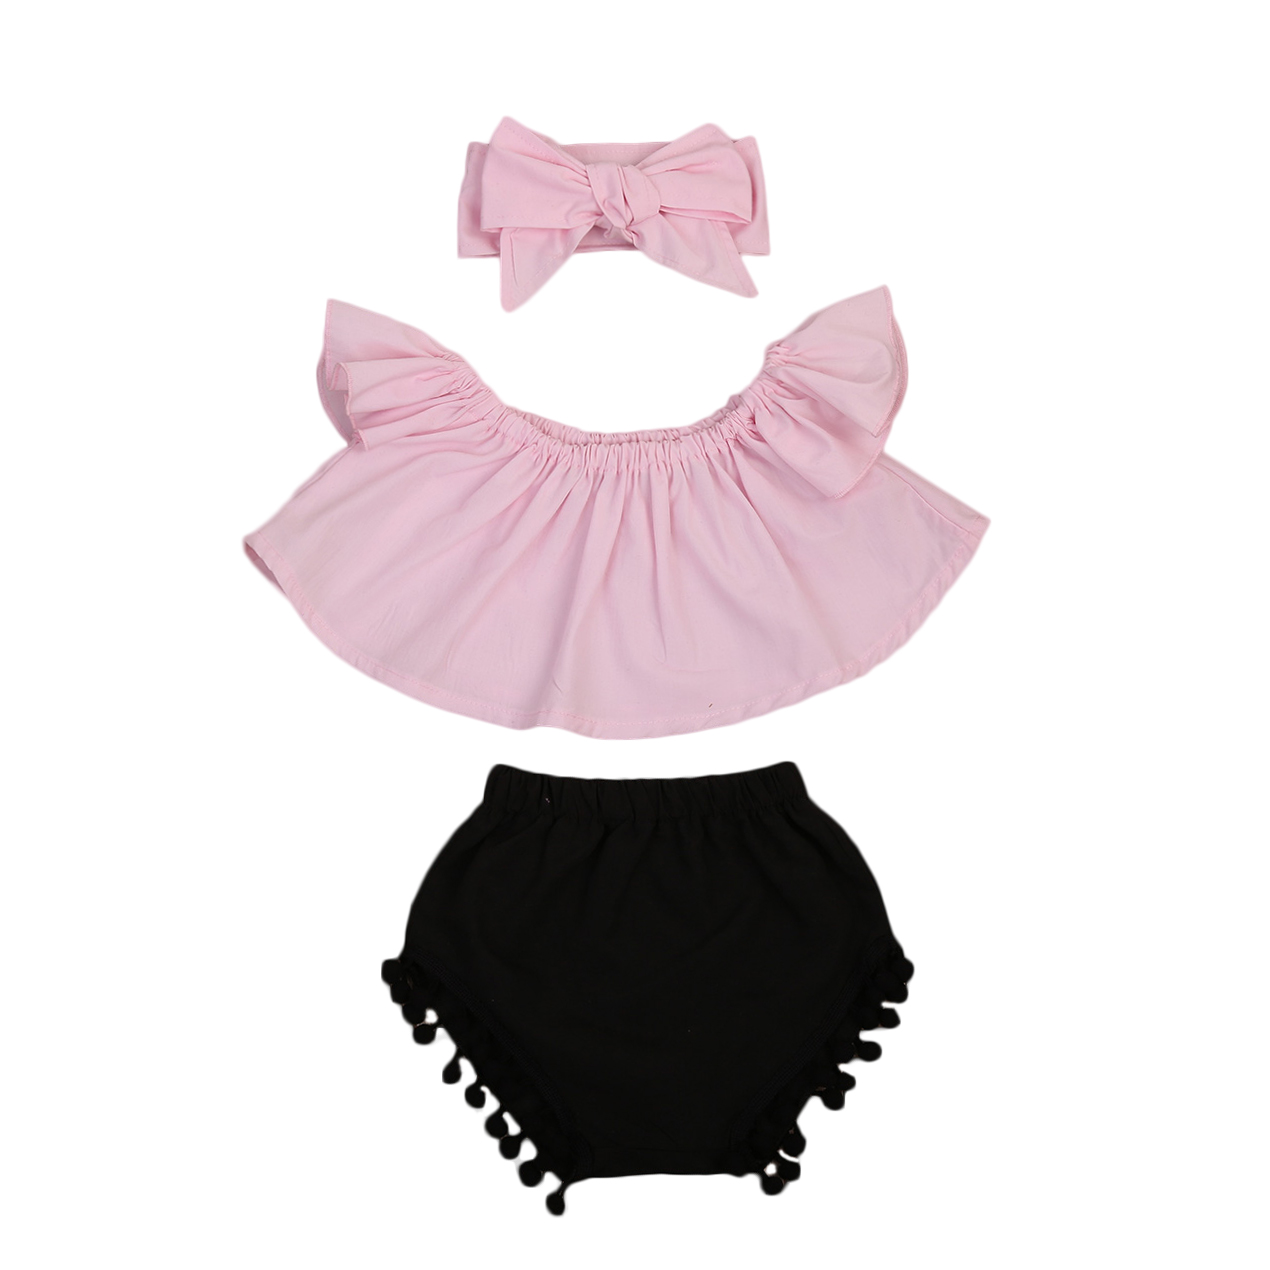 Toddler Baby Girl Clothes Set Off Shoulder Top Crop T-Shirt Shorts Pants Small Ball Pink Girls Headband Costume 3PCS Outfit stylish off the shoulder ribbed crop top for women